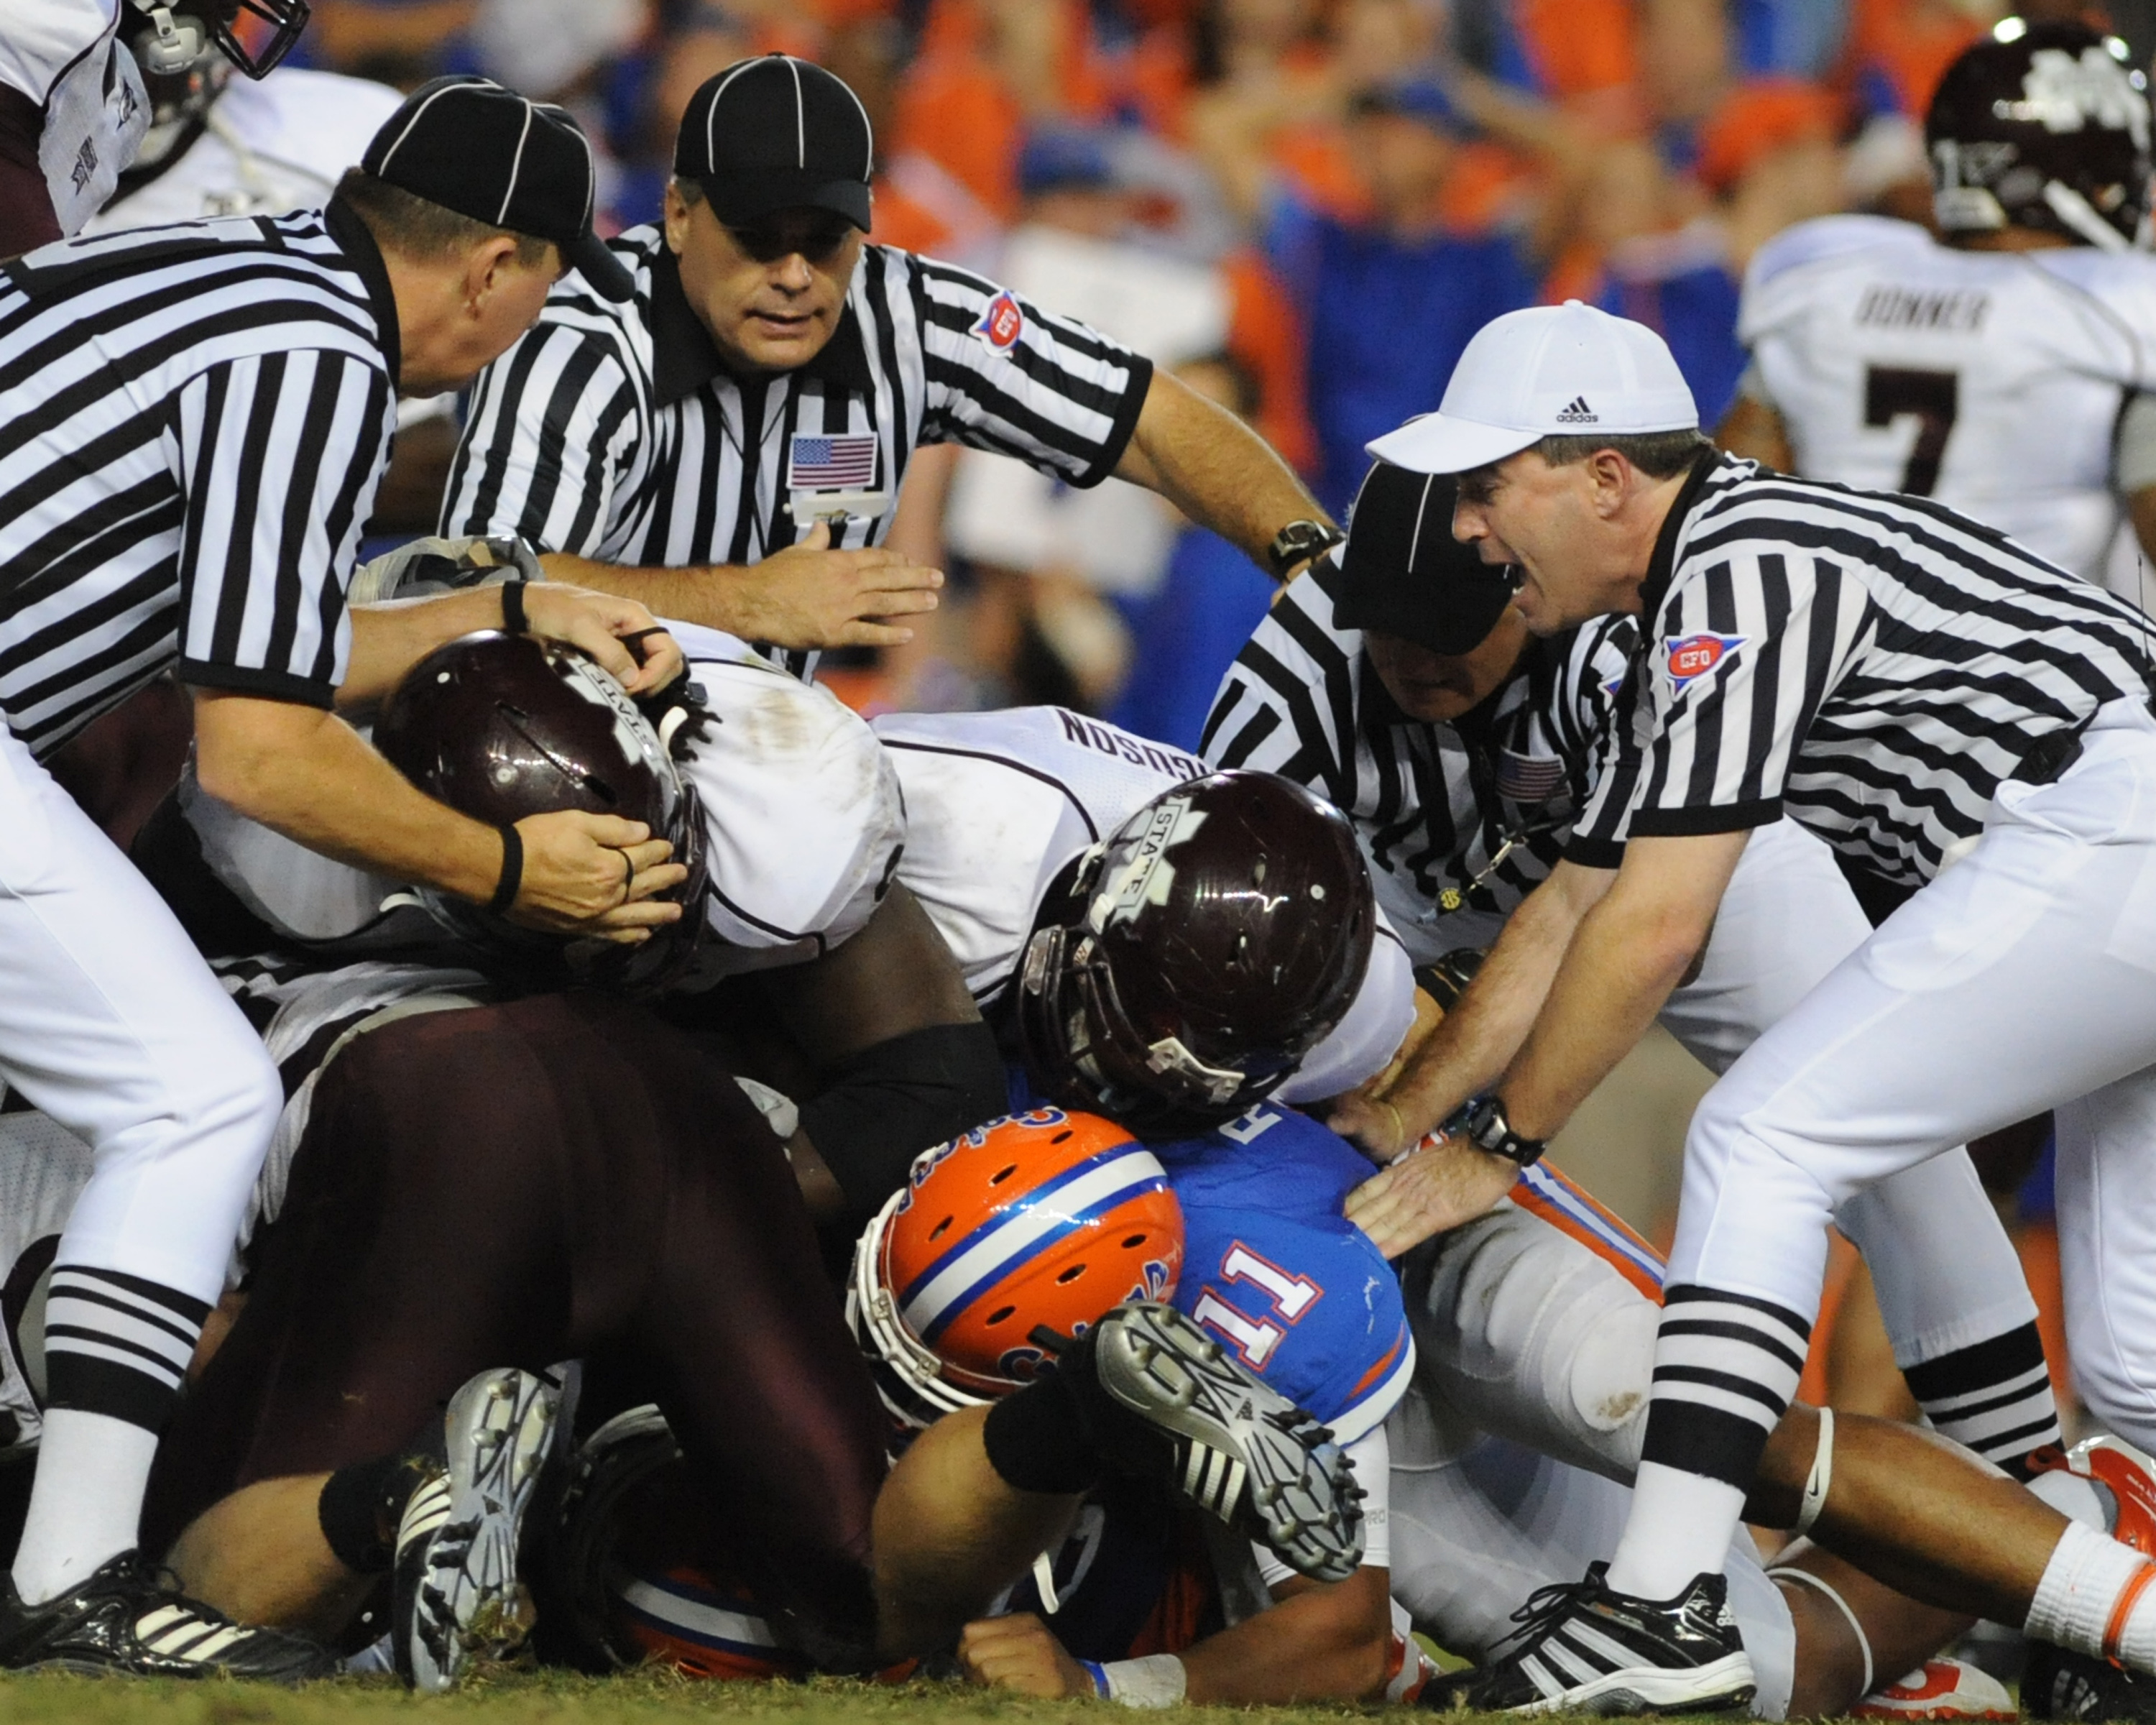 The result of this play was that Florida was flagged for Illegal Forward Scrum.